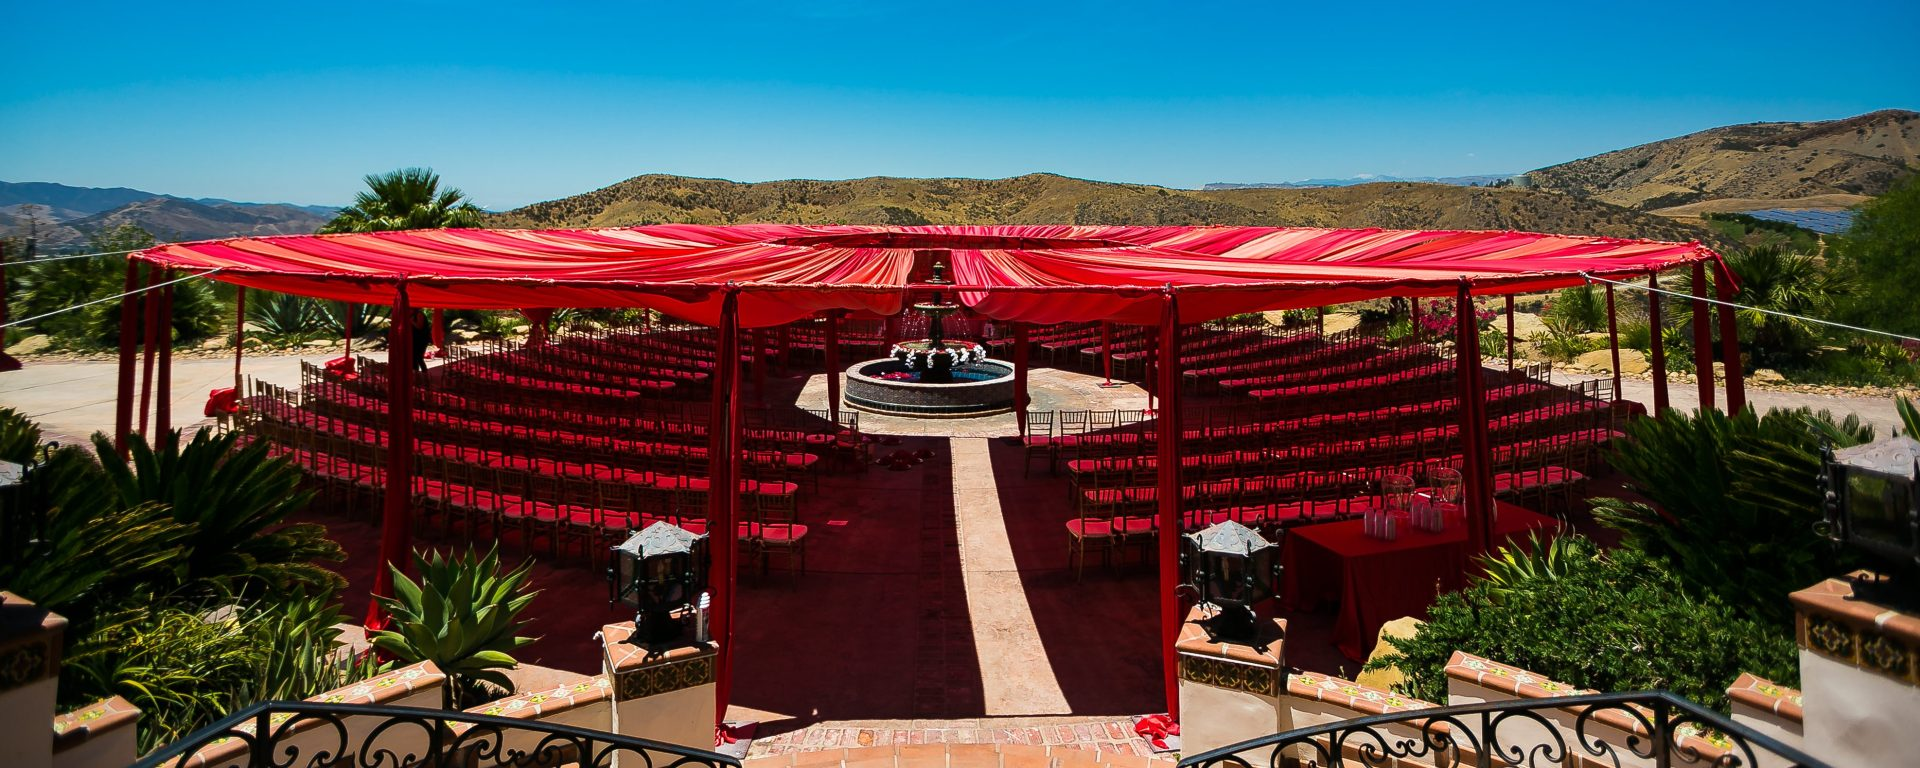 Indian wedding ceremony setup with a rent canopy.